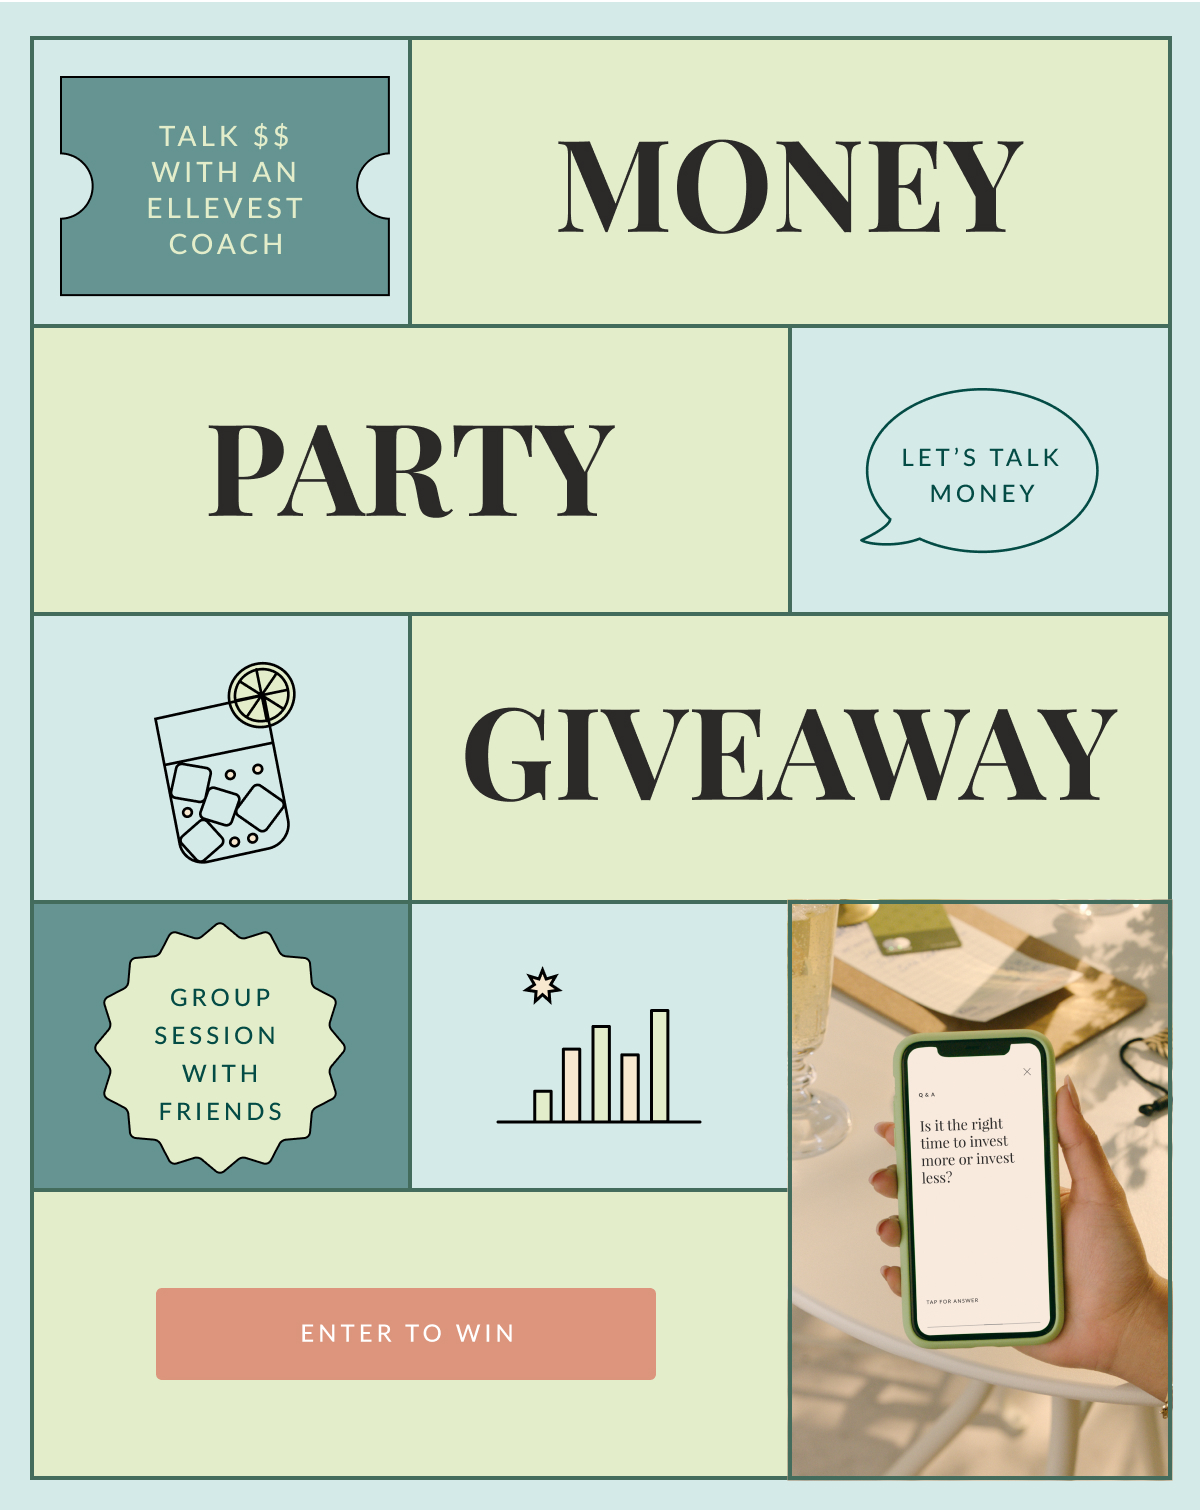 """Graphic that reads, """"Talk $$ with an Ellevest coach. Group session with friends. Money talk giveaway. Let's talk money. Enter to win."""""""